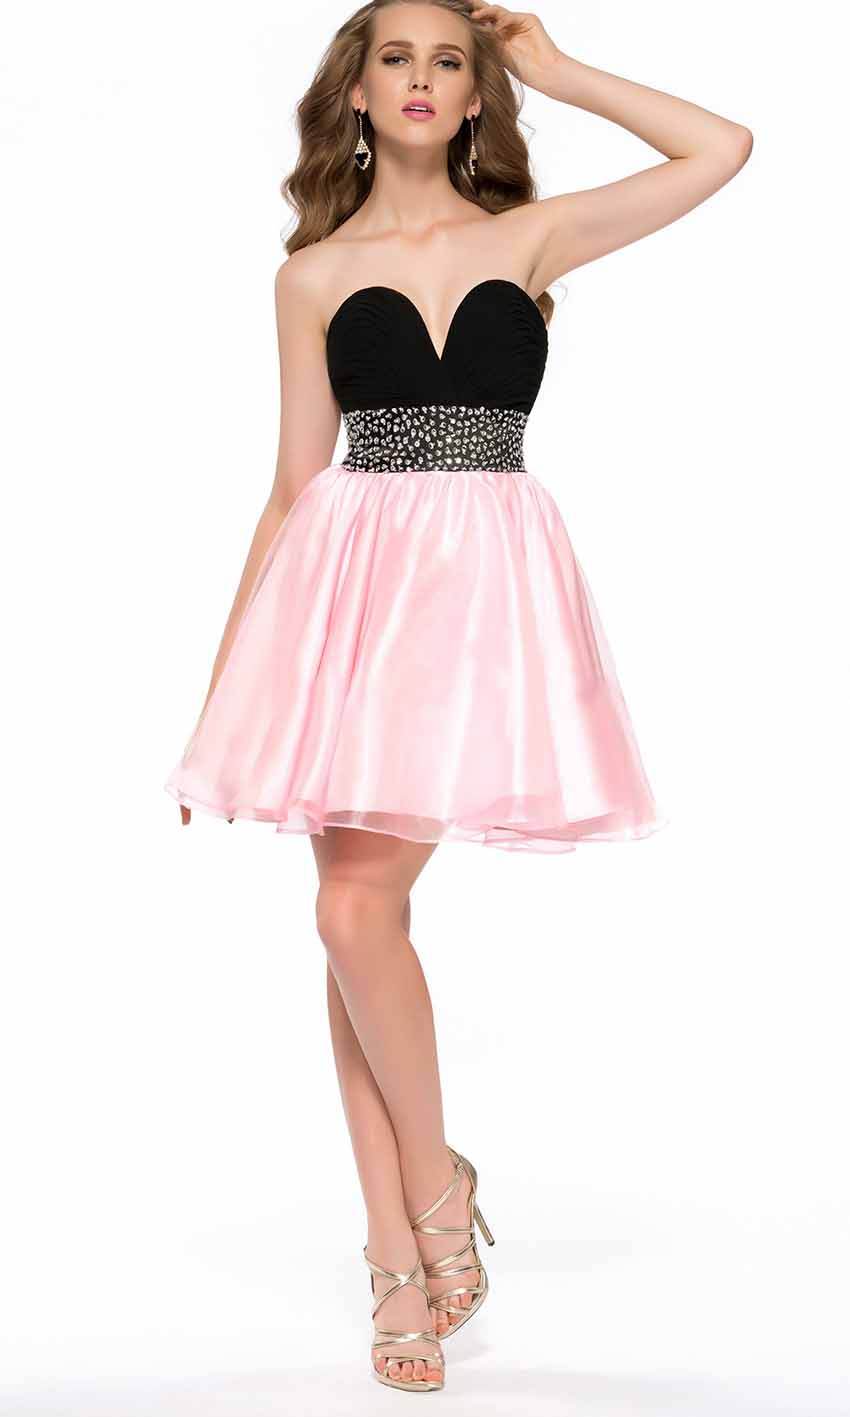 6f18951a6904 Black and Pink Sweetheart Empire Short Prom Dresses KSP391 [KSP391] -  £84.00 : Cheap Prom Dresses Uk, ...